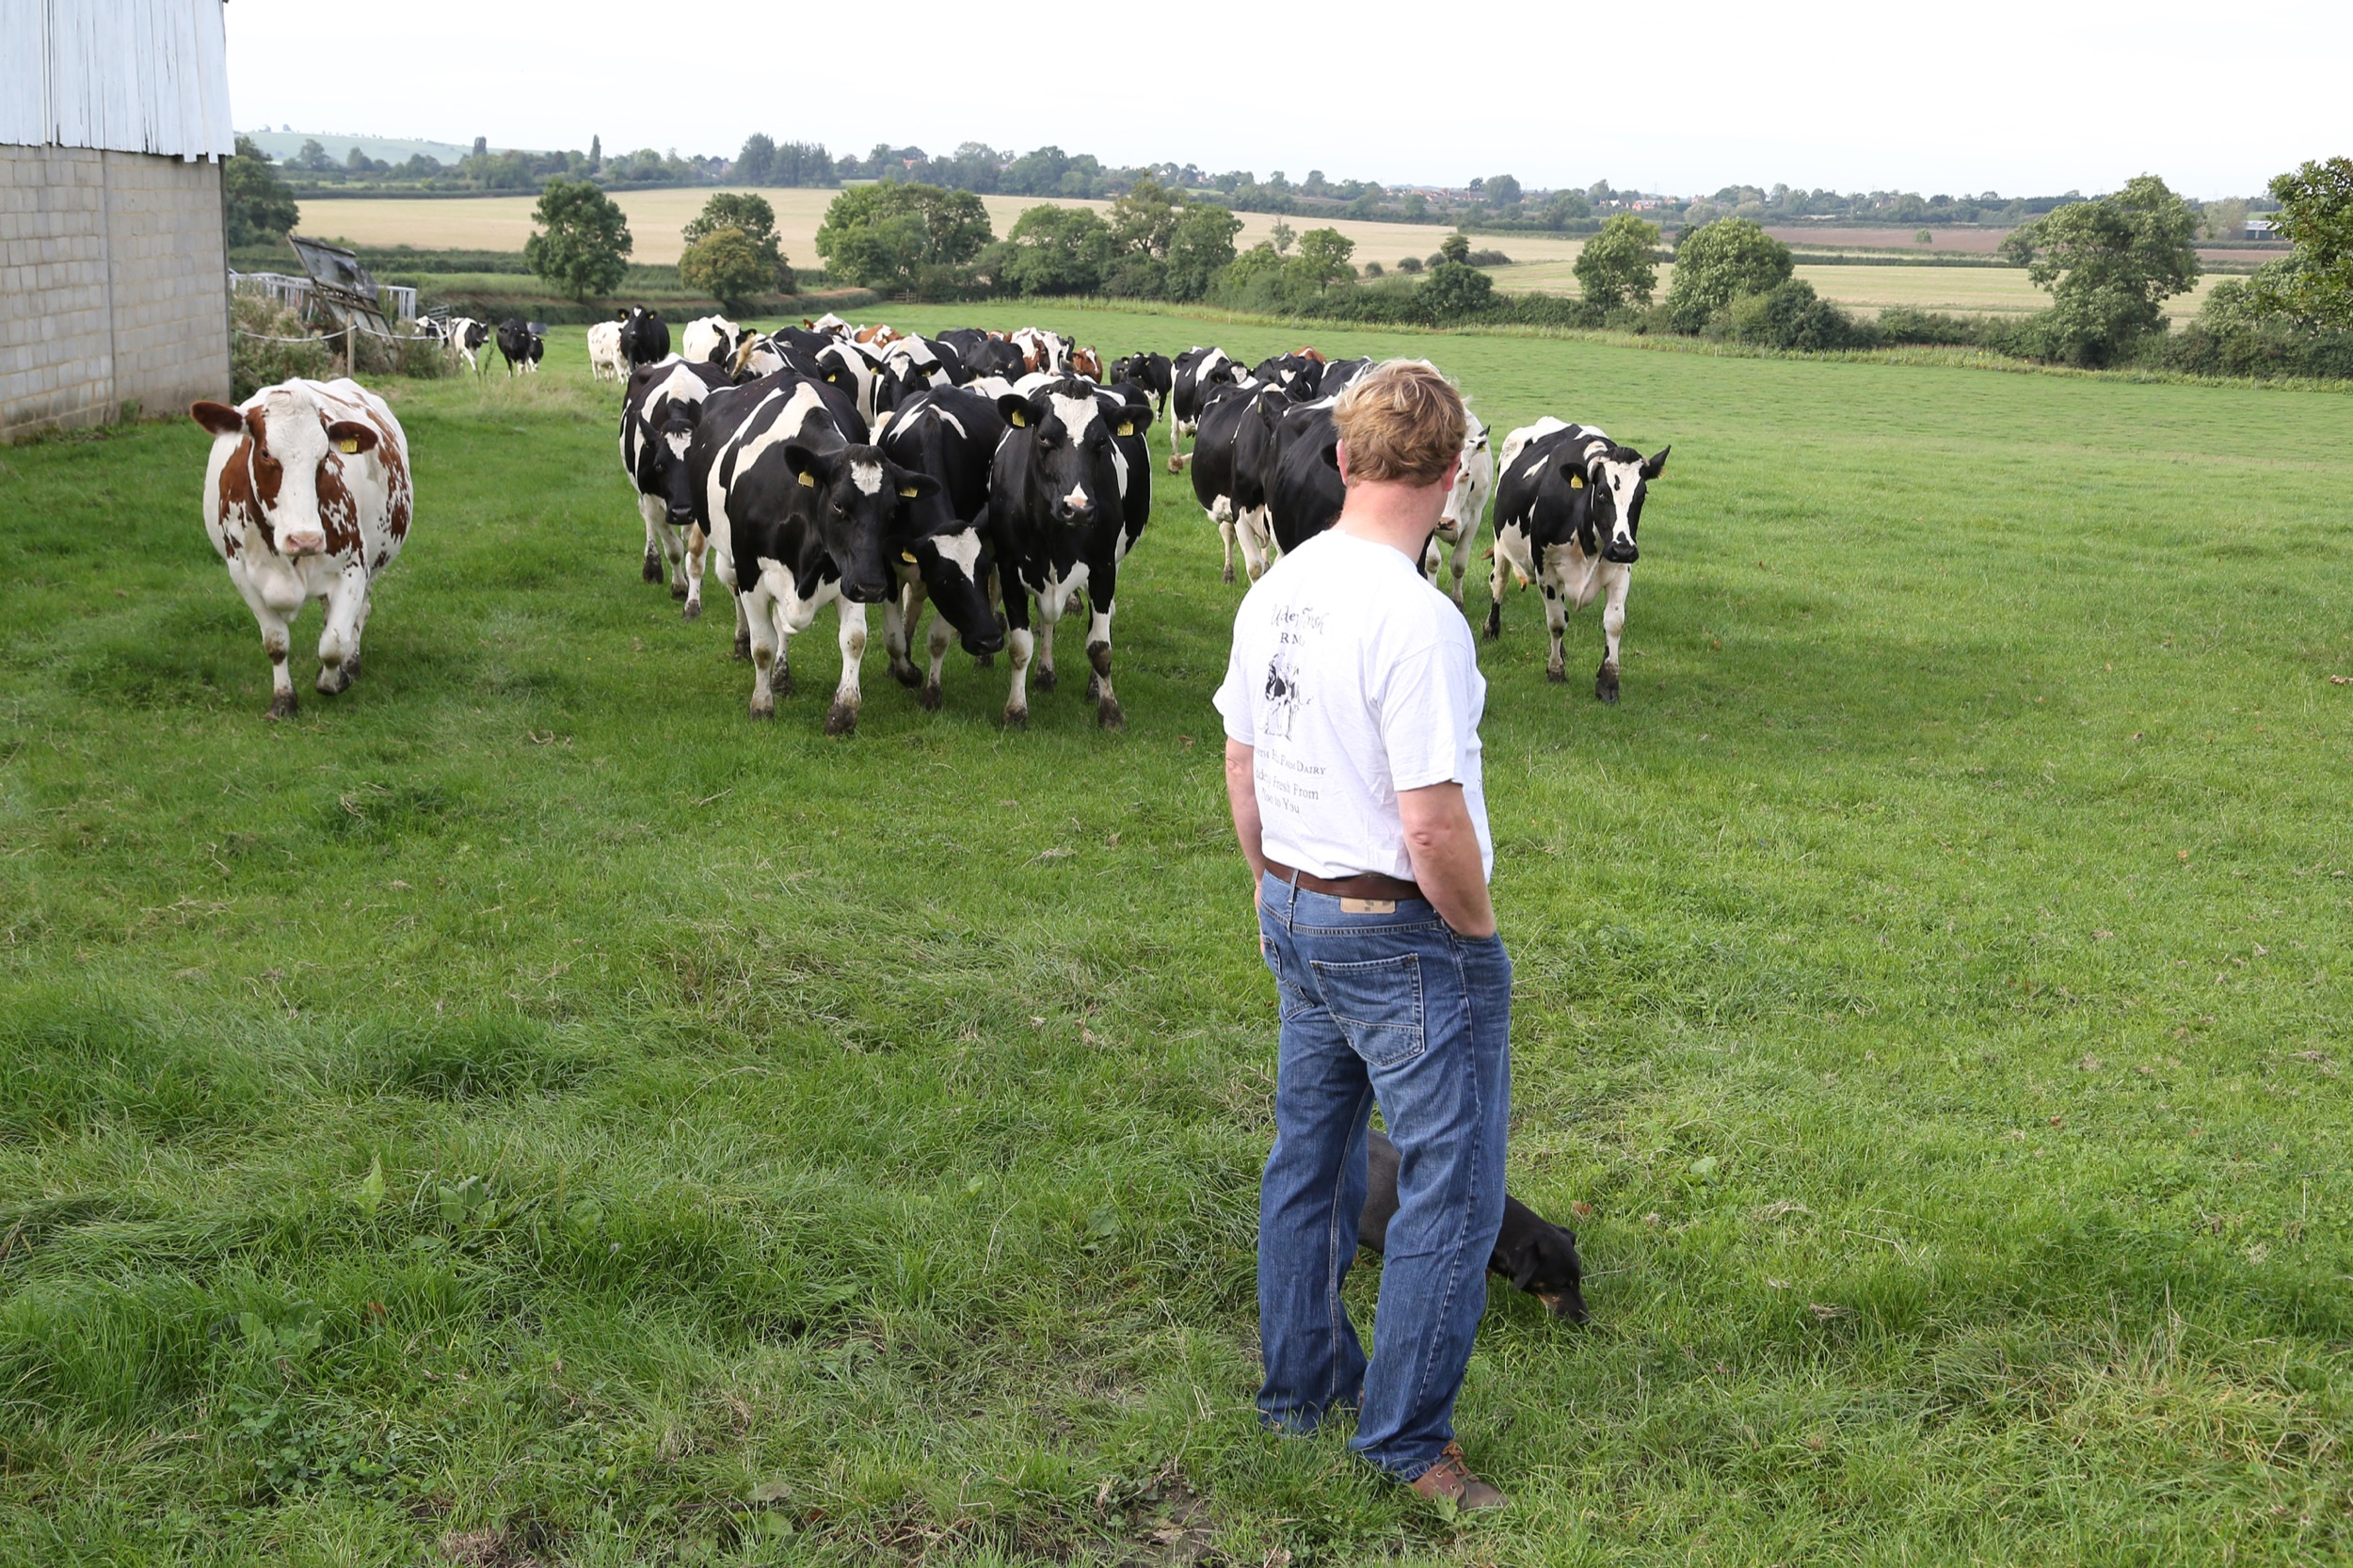 Ian & the cows